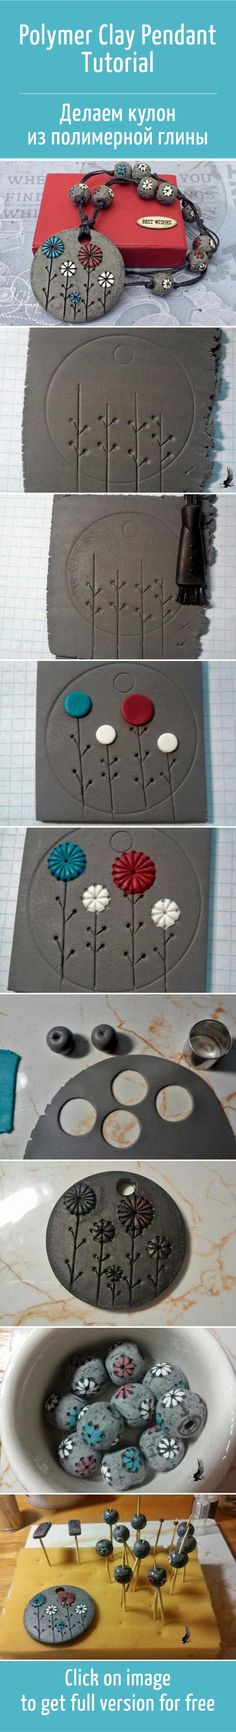 We sculpt a pendant with beads of polymer clay